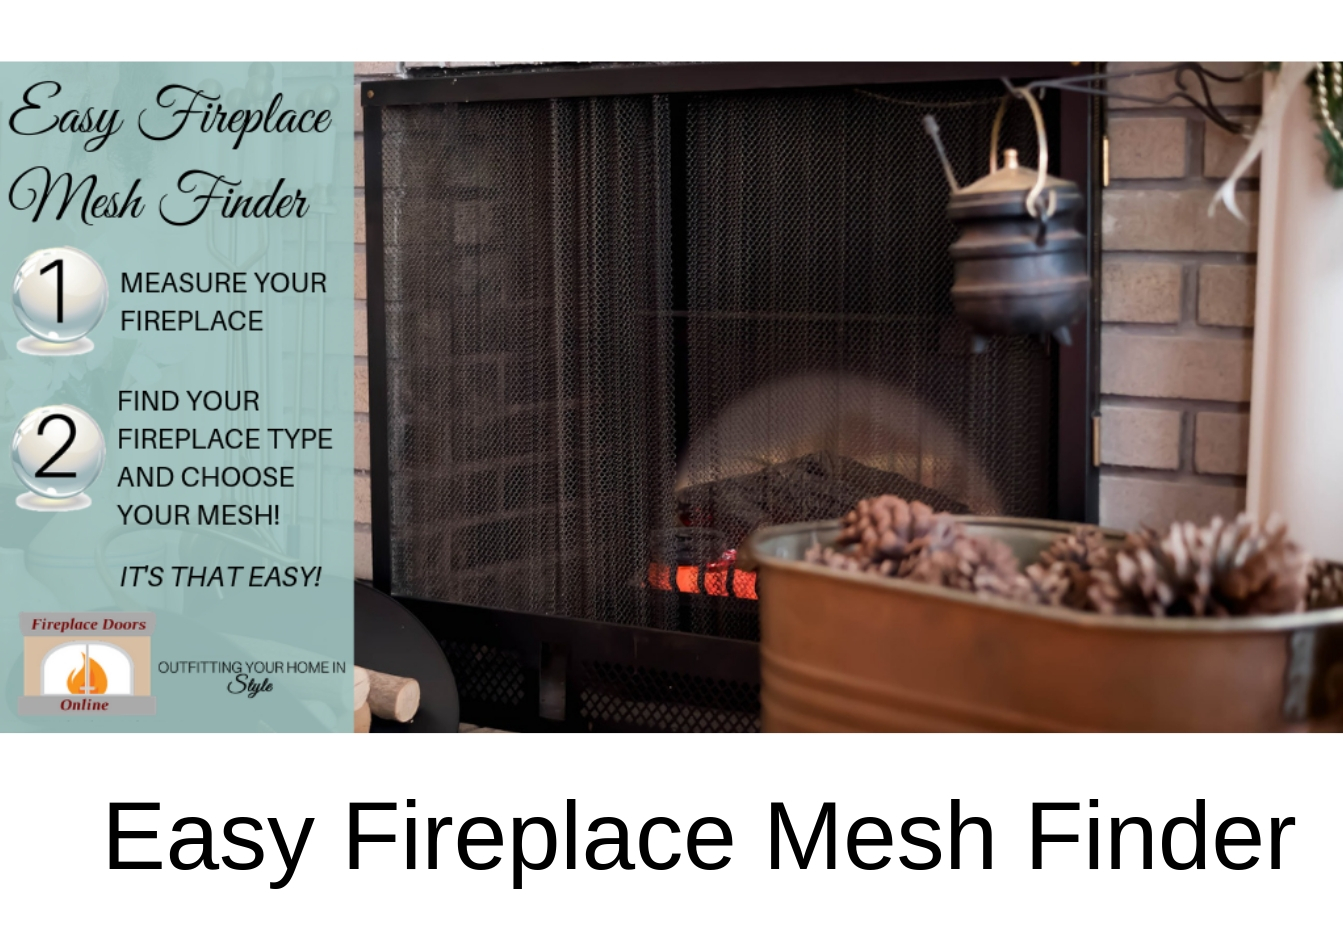 Easy Fireplace Mesh Finder